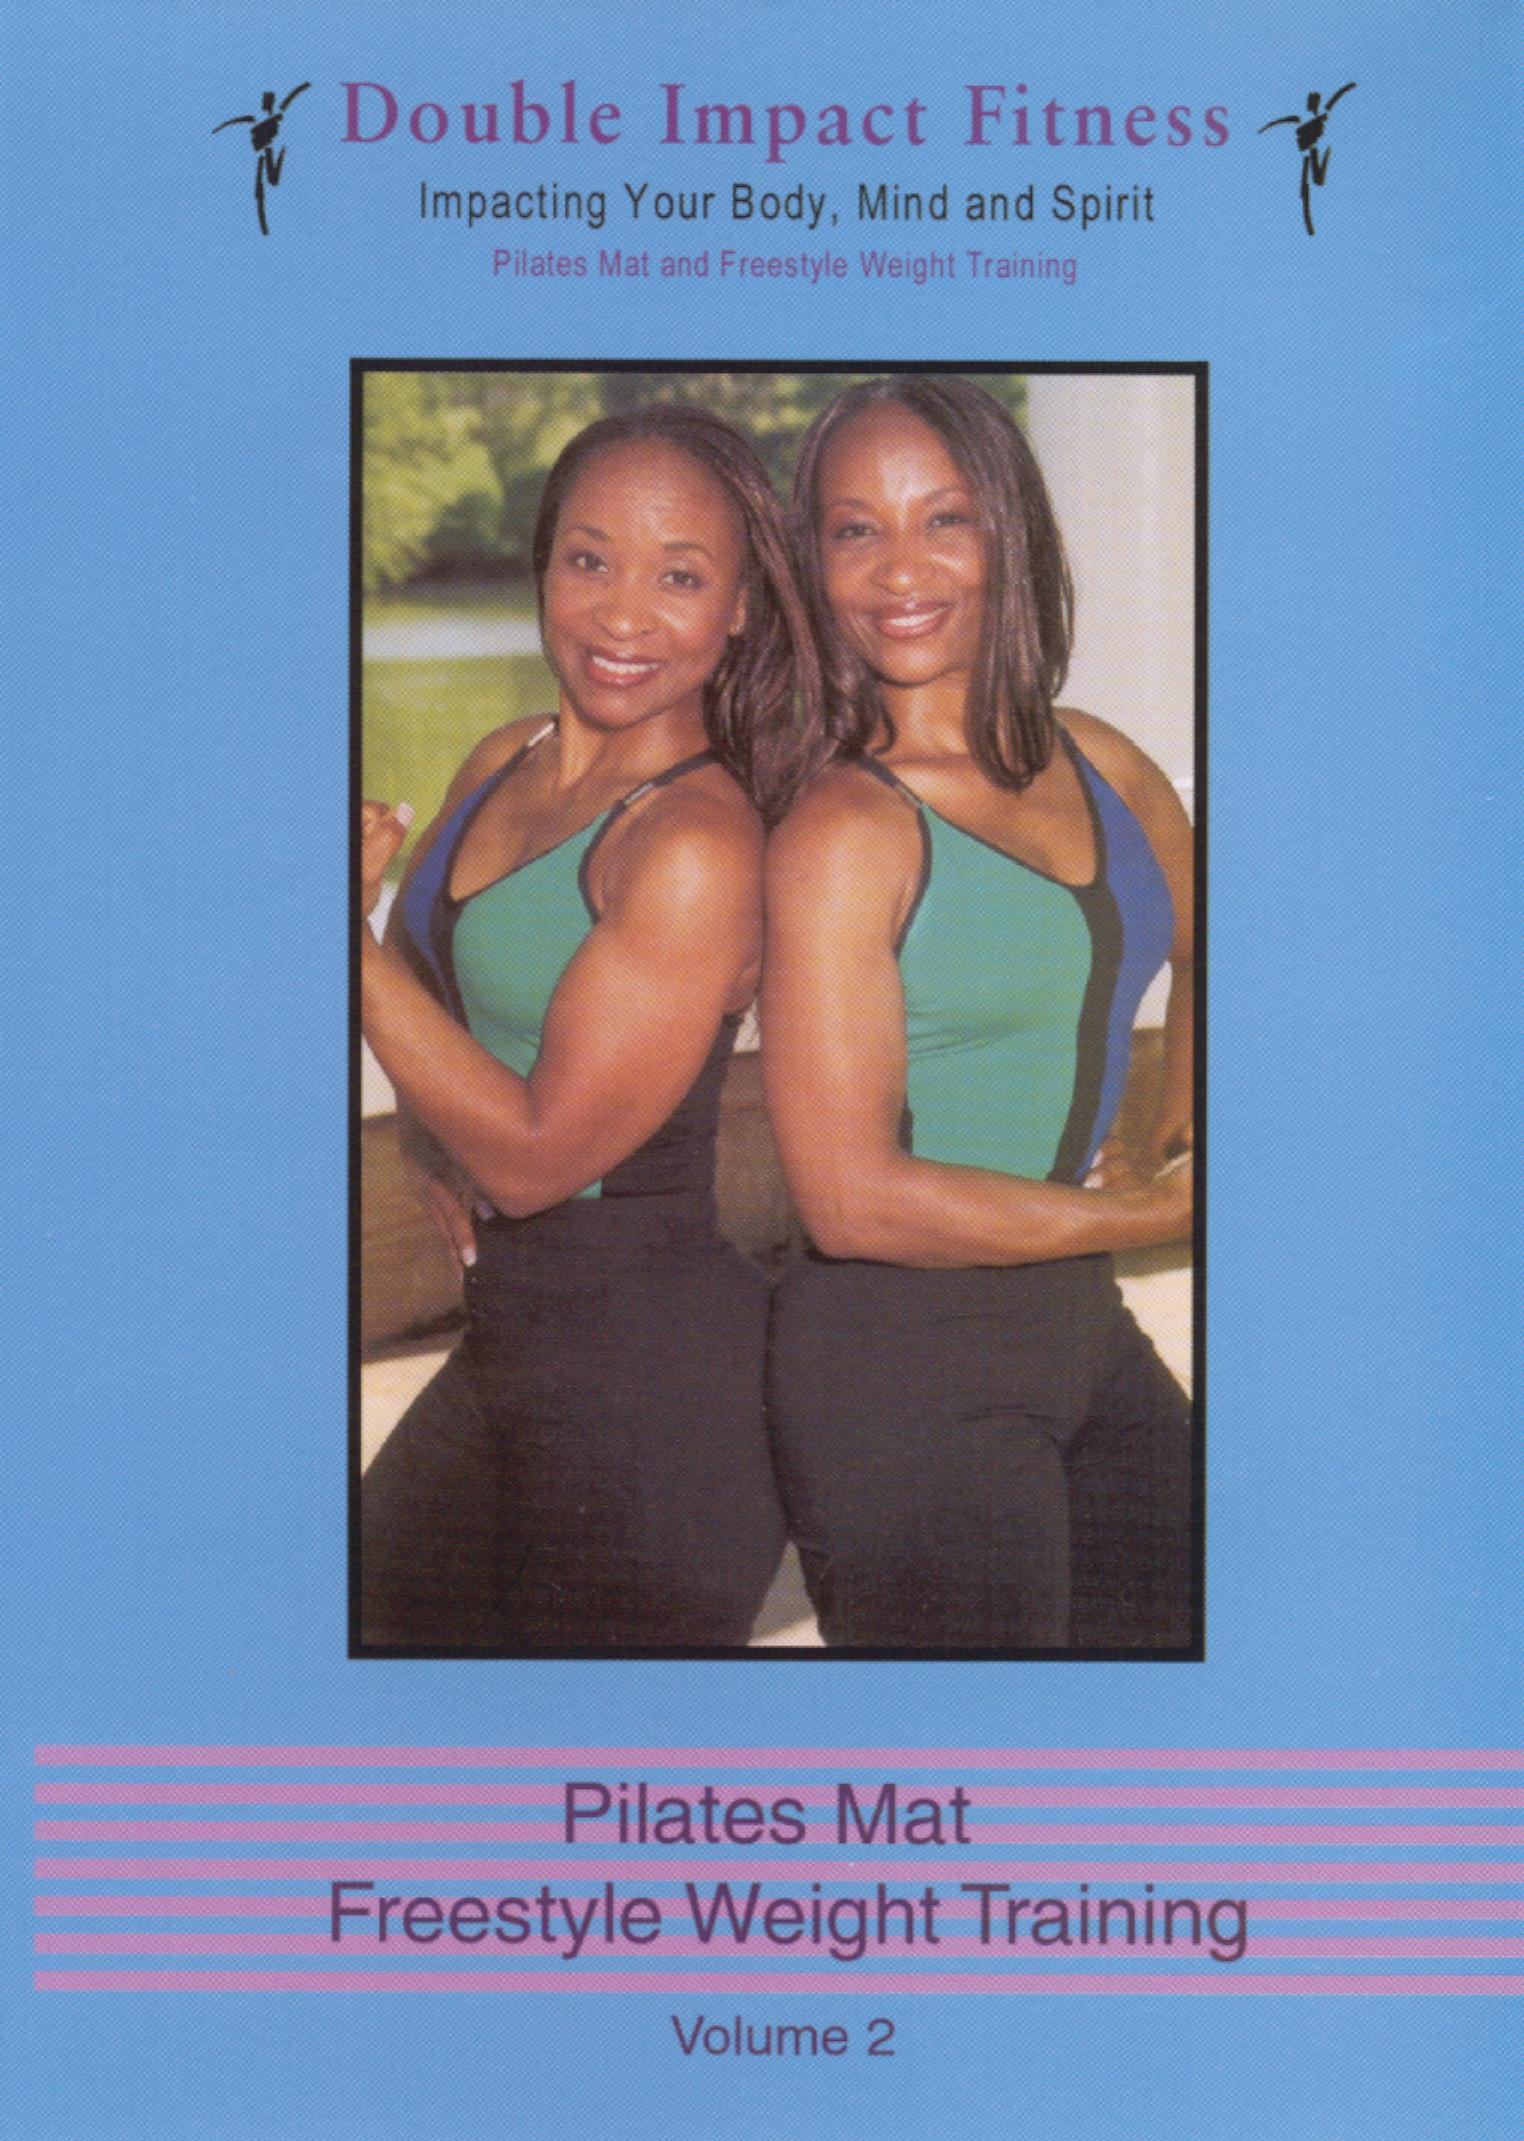 Double Impact Fitness: Pilates and Freestyle Training